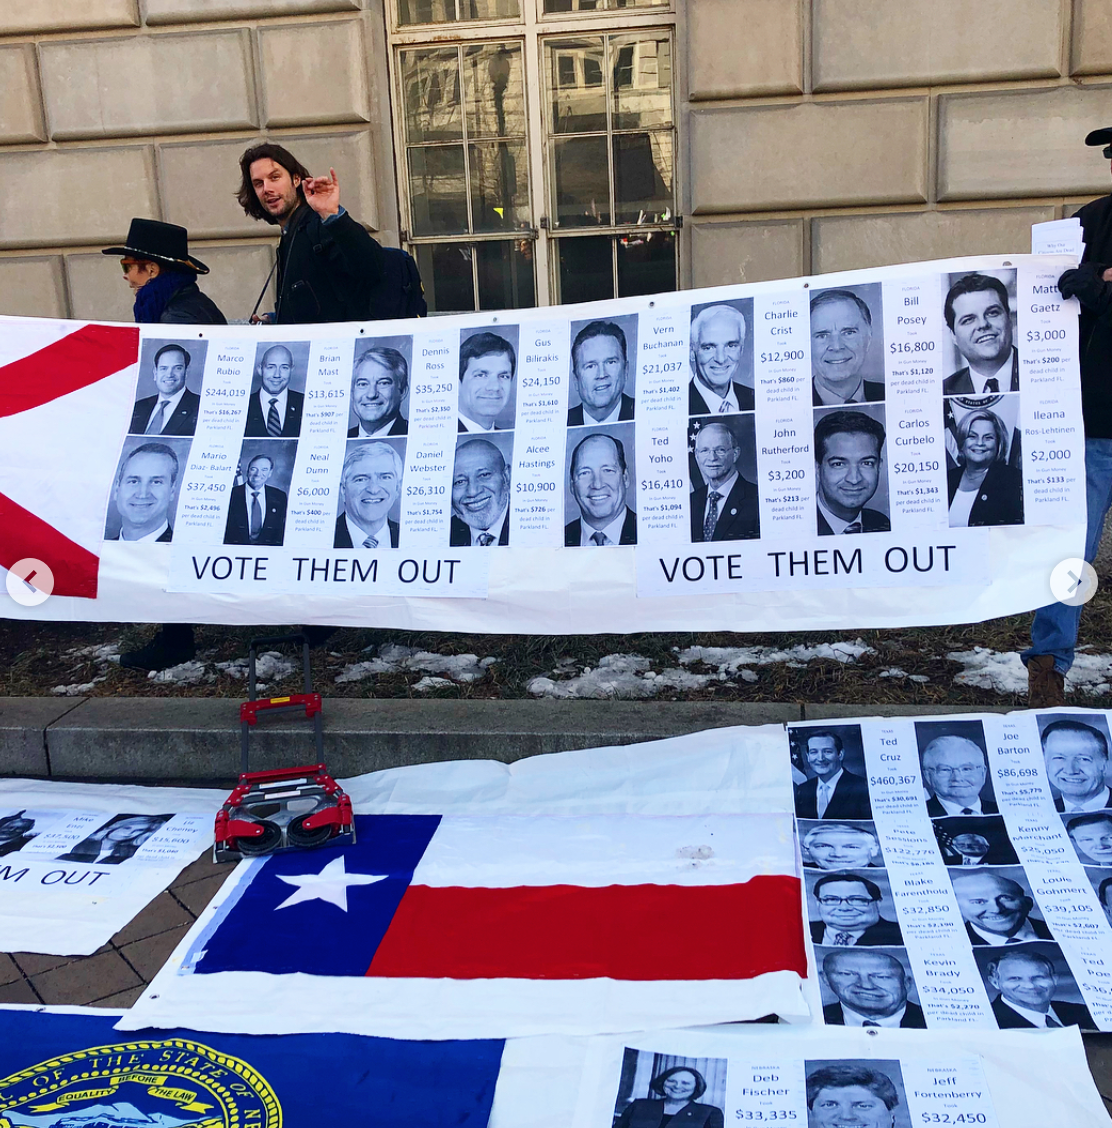 The 3rd interview with the man who designed this large infomrative art installation about which of our elected representatives have taken NRA money